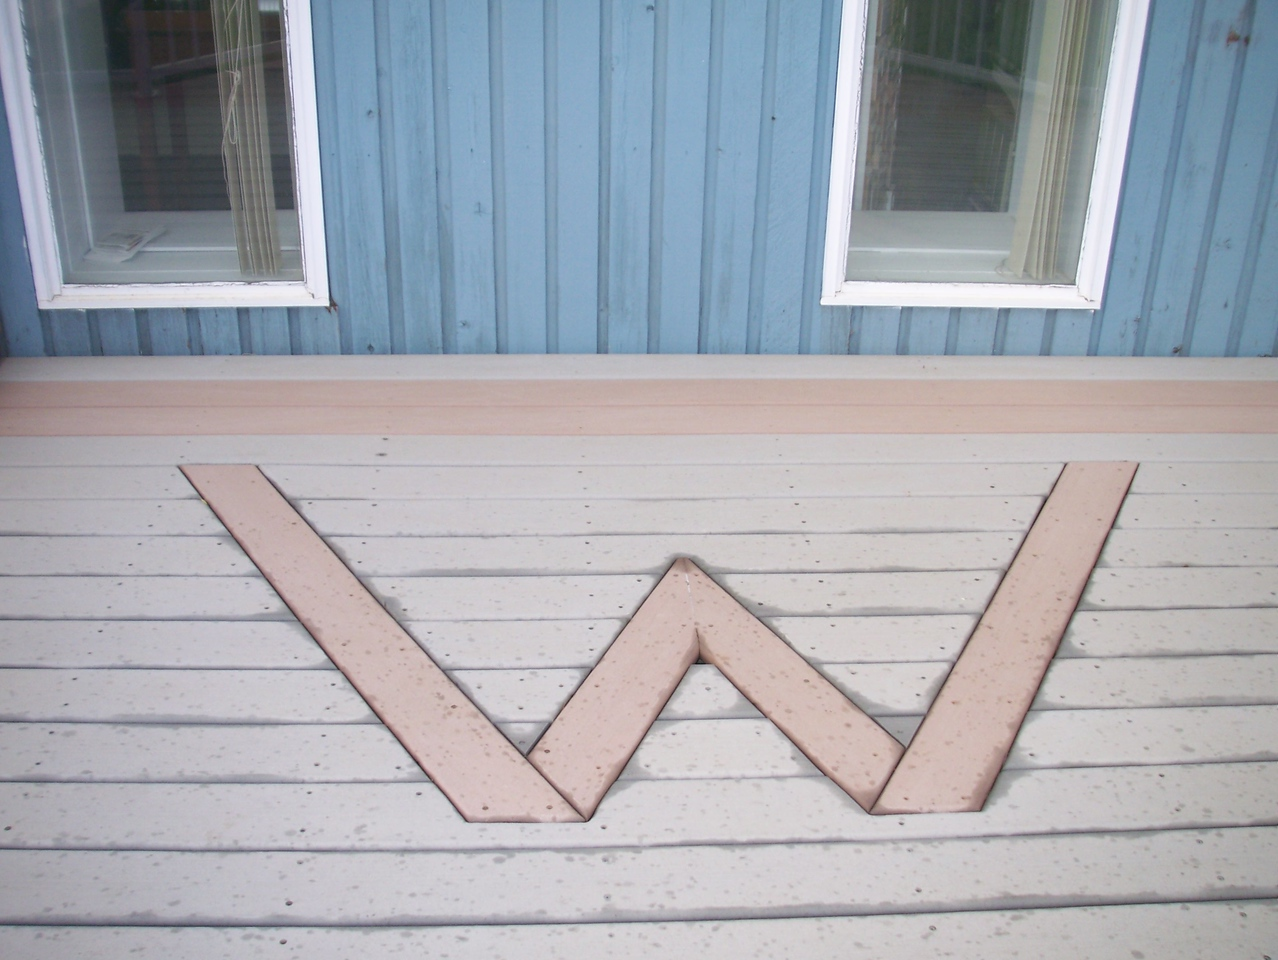 The deck outside Windsor Plywood with W for Woodson, this is Neil's vision for his deck.